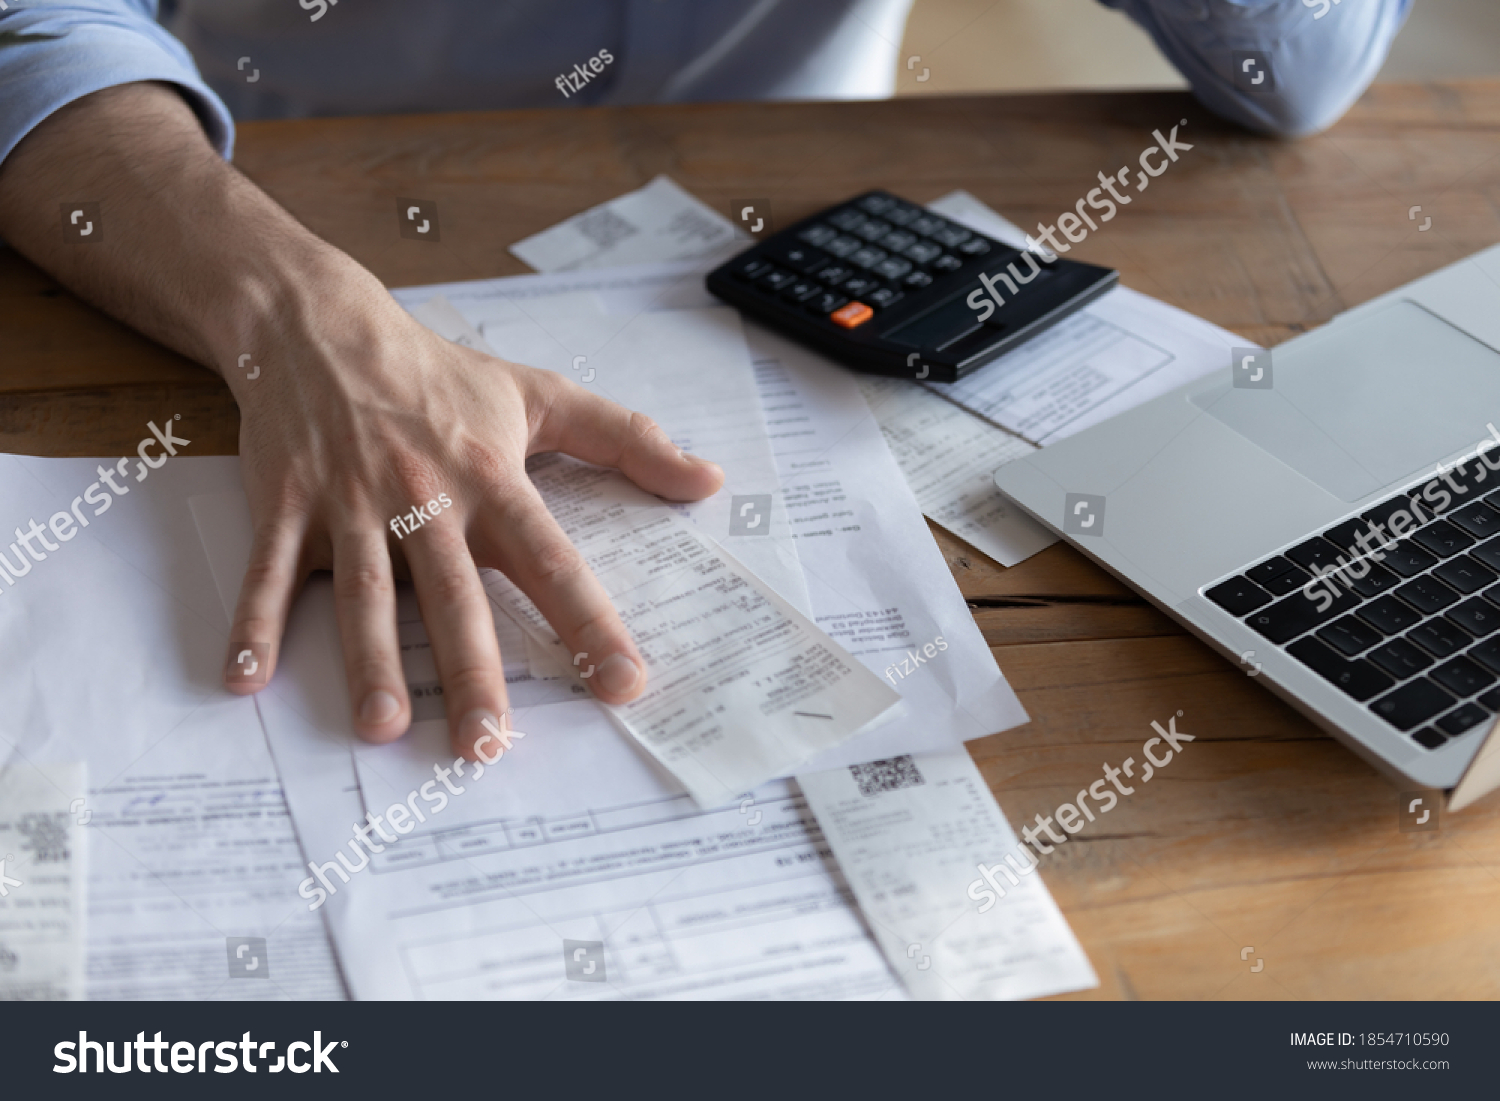 Individual entrepreneur make analysis of firm expenses, accountant do paperwork concept. On desk lot of receipts, calculator and laptop close up view. Man sit at table reviewing bills, managing budget #1854710590